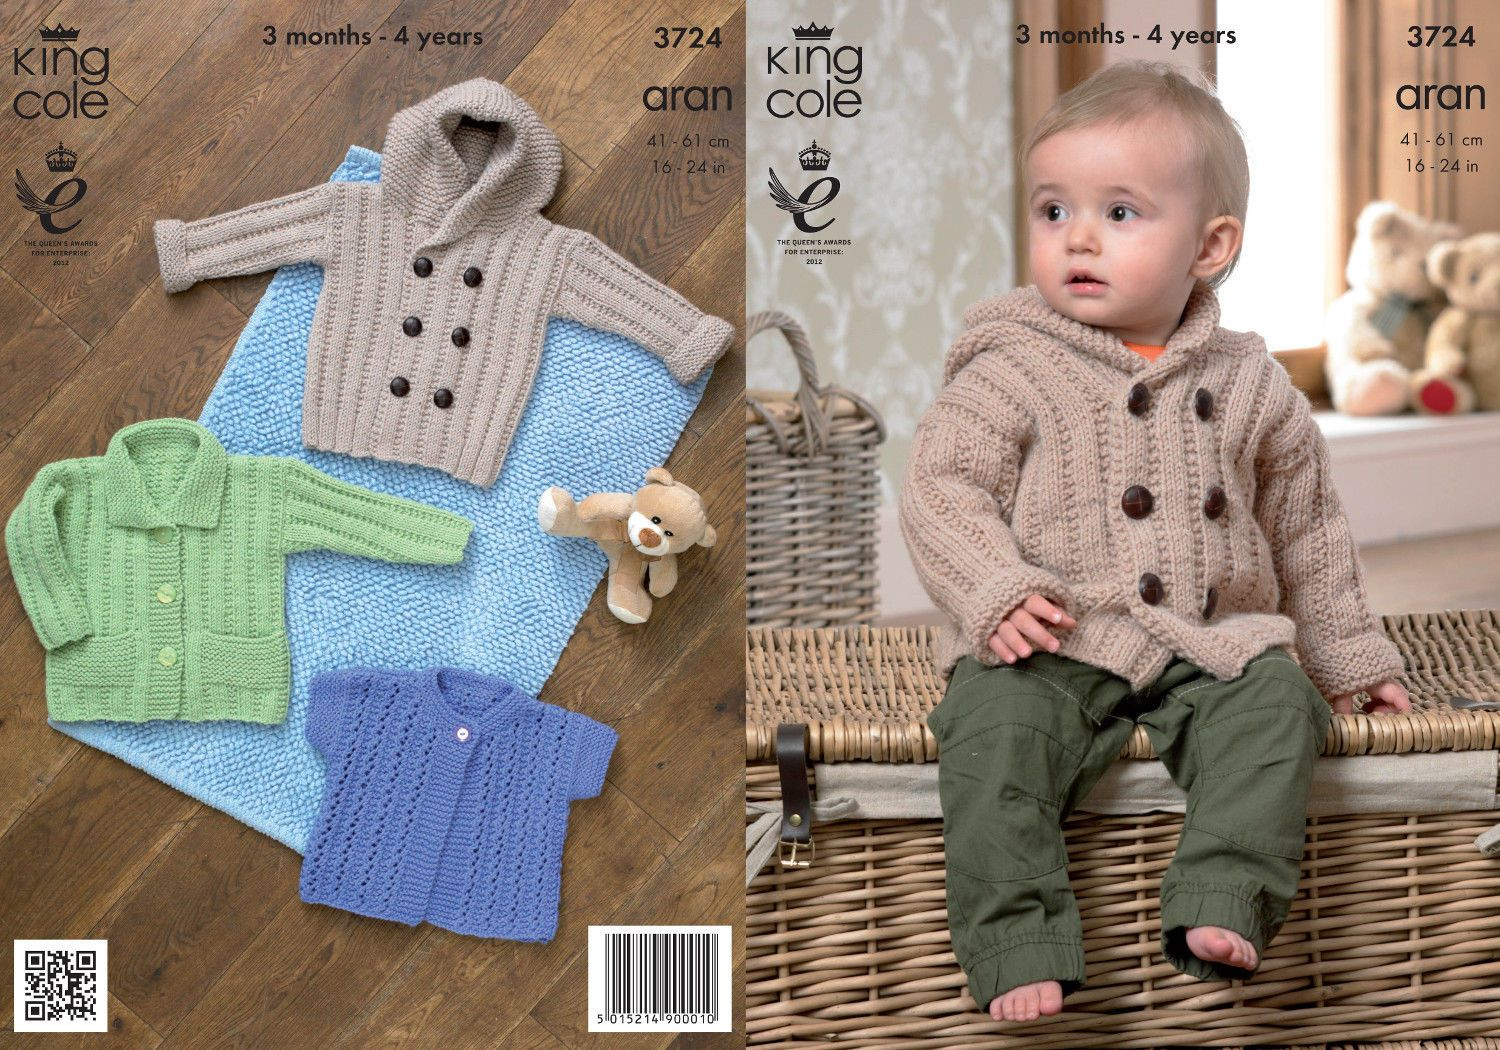 2.89 GBP - King Cole Baby Aran Knitting Pattern Kids Hooded Coat ...